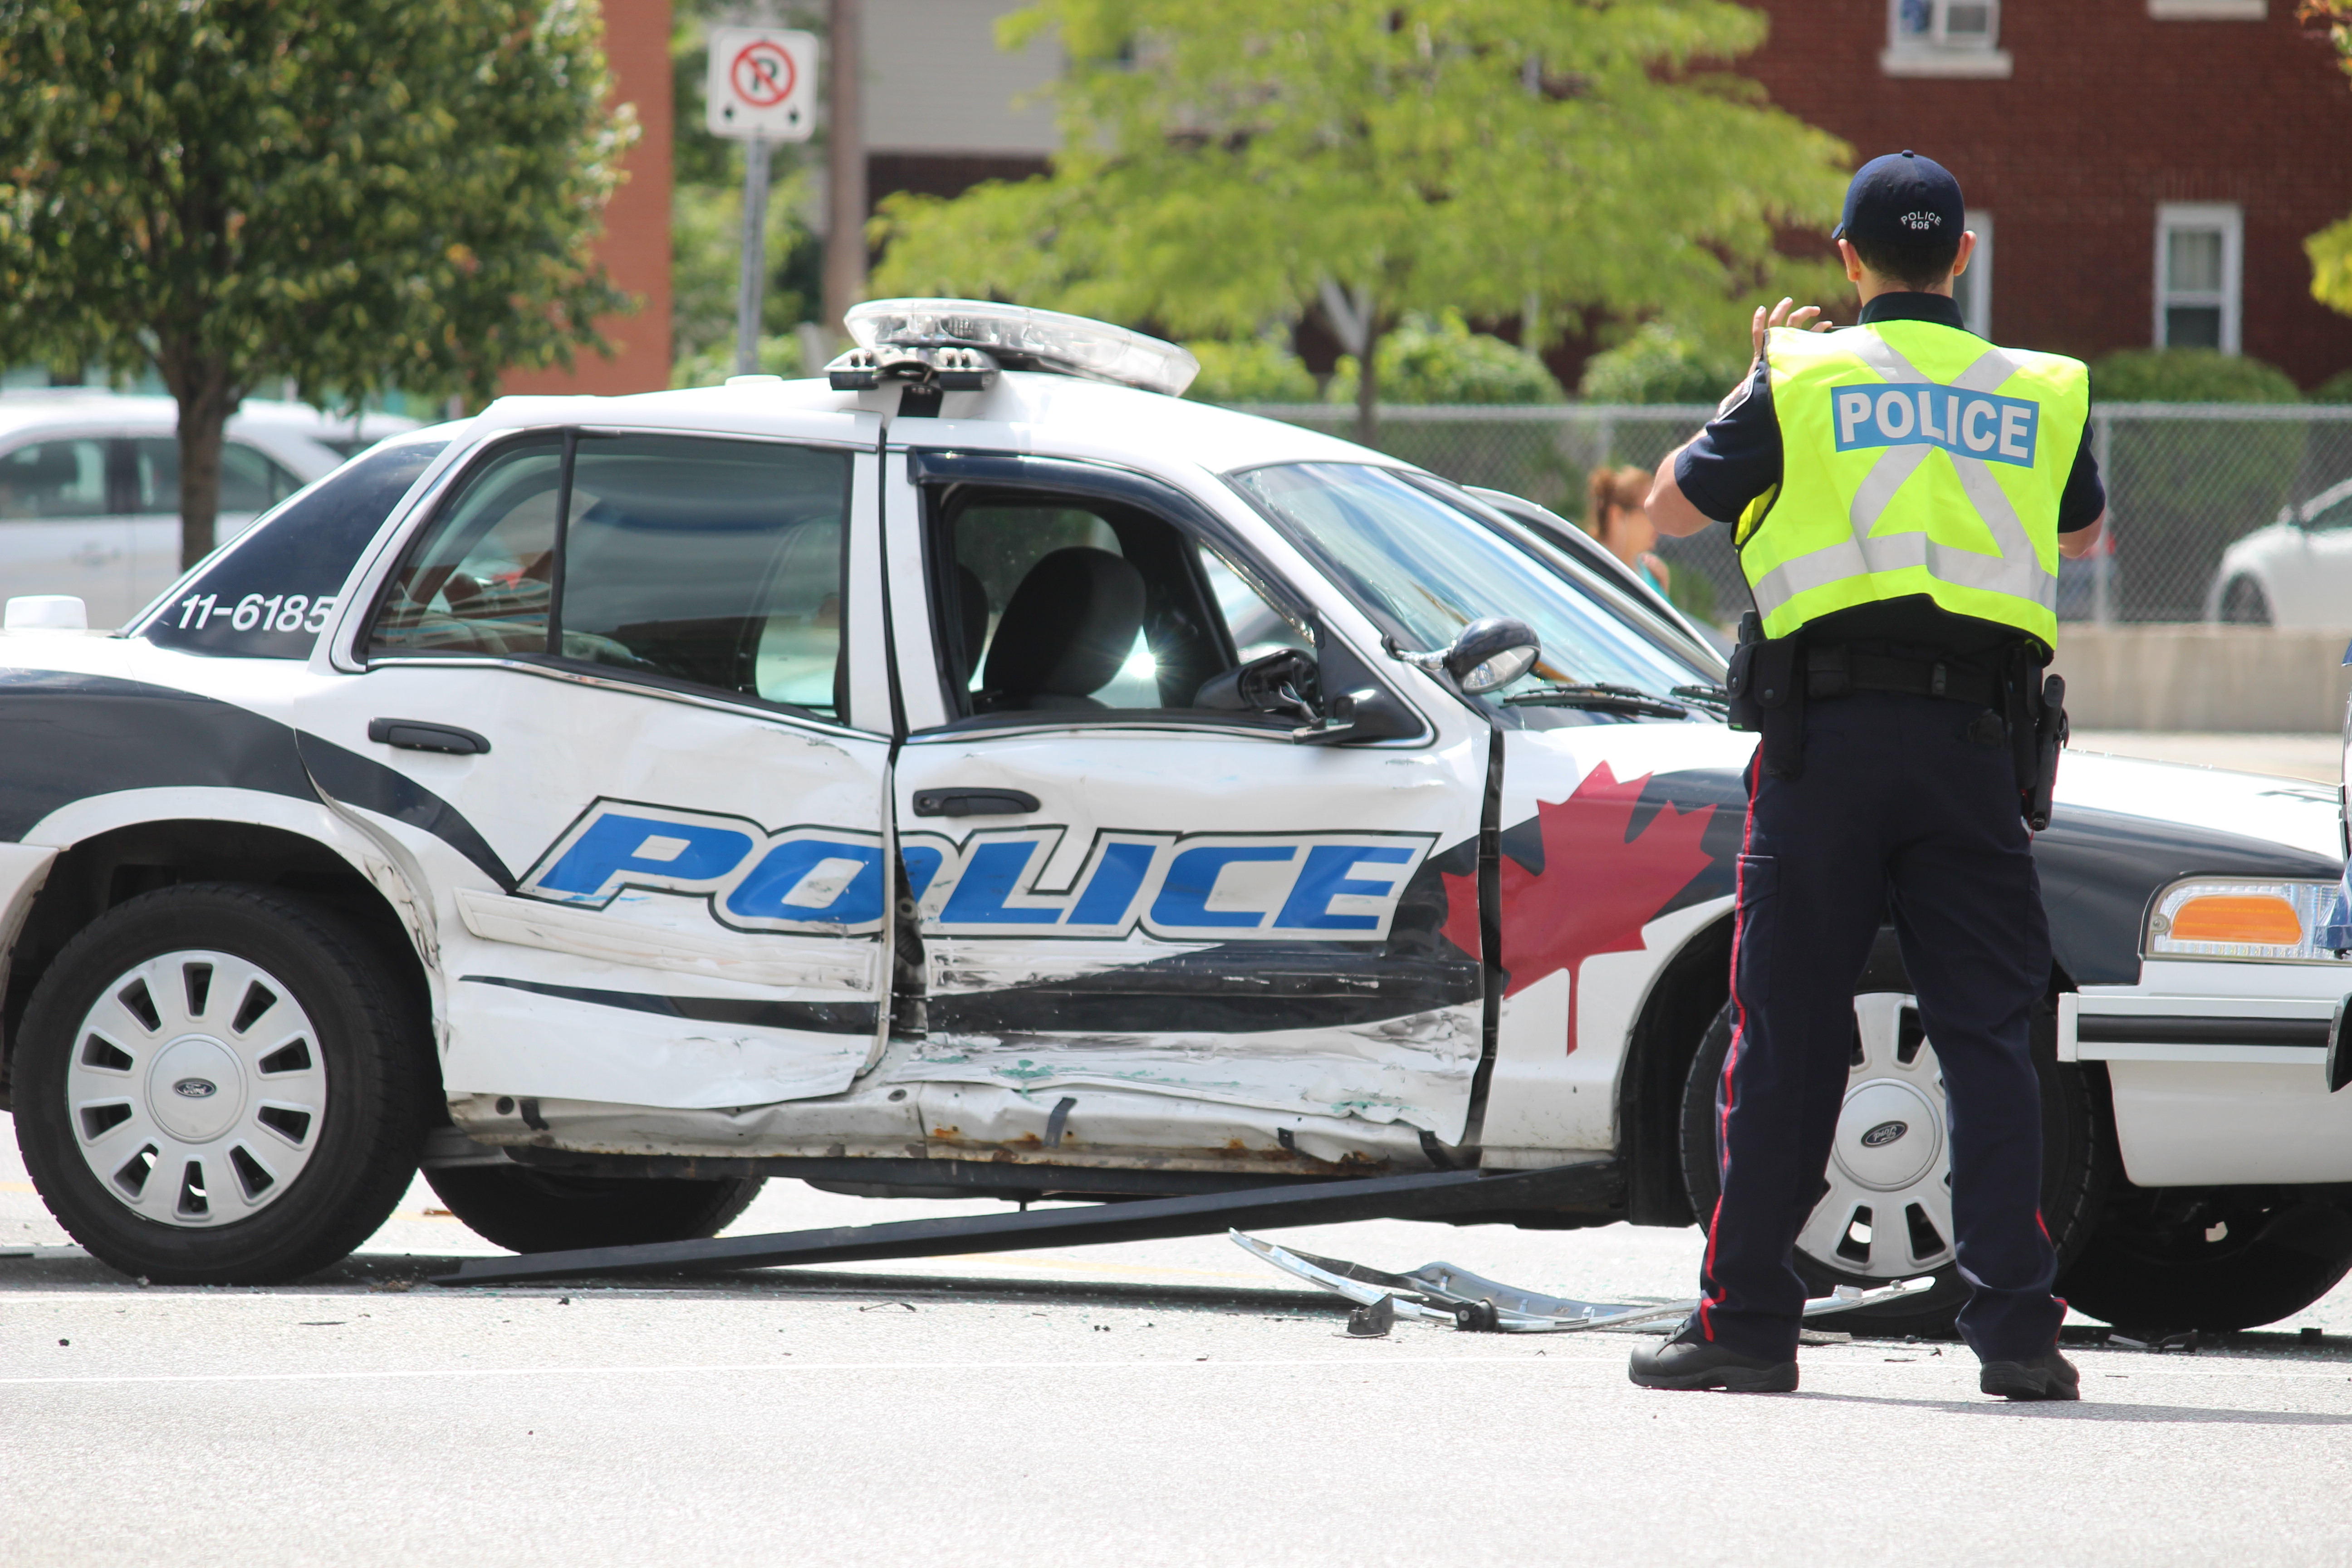 A Windsor police cruiser was involved in a crash at Ouellette and Giles, August 20, 2015. (Photo by Jason Viau)